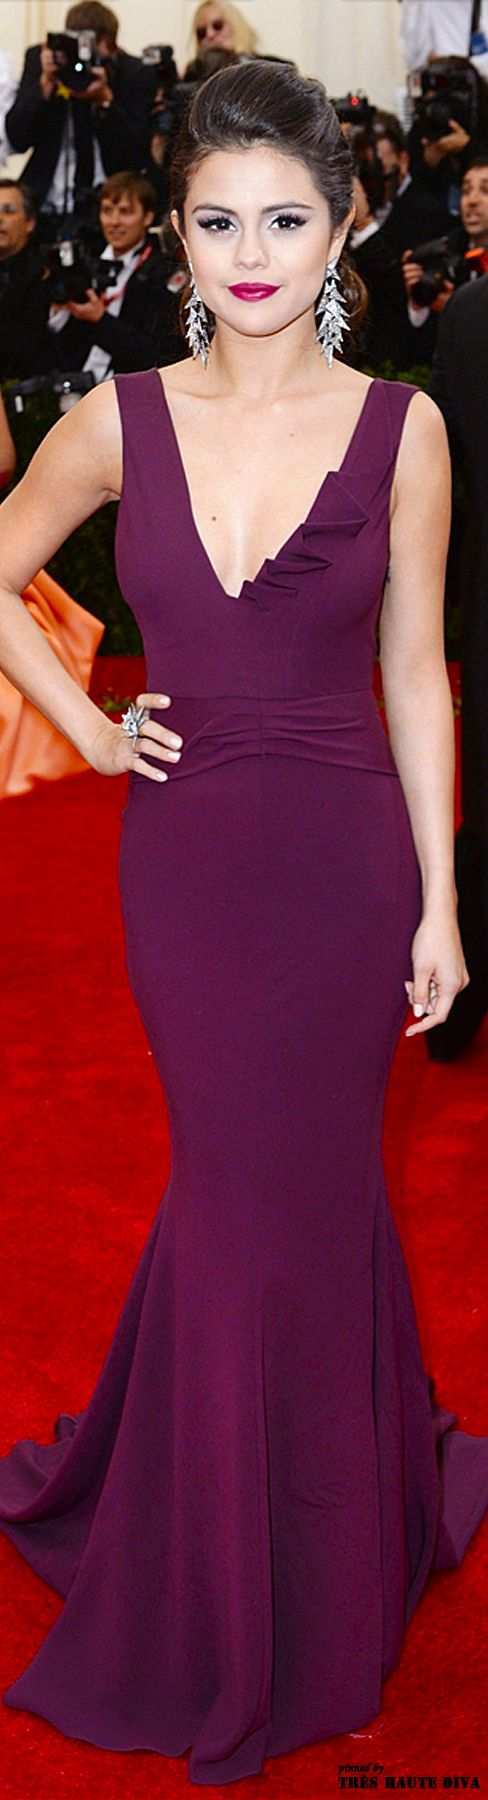 17 Best images about Selena Gomez on Pinterest | Red carpets ...